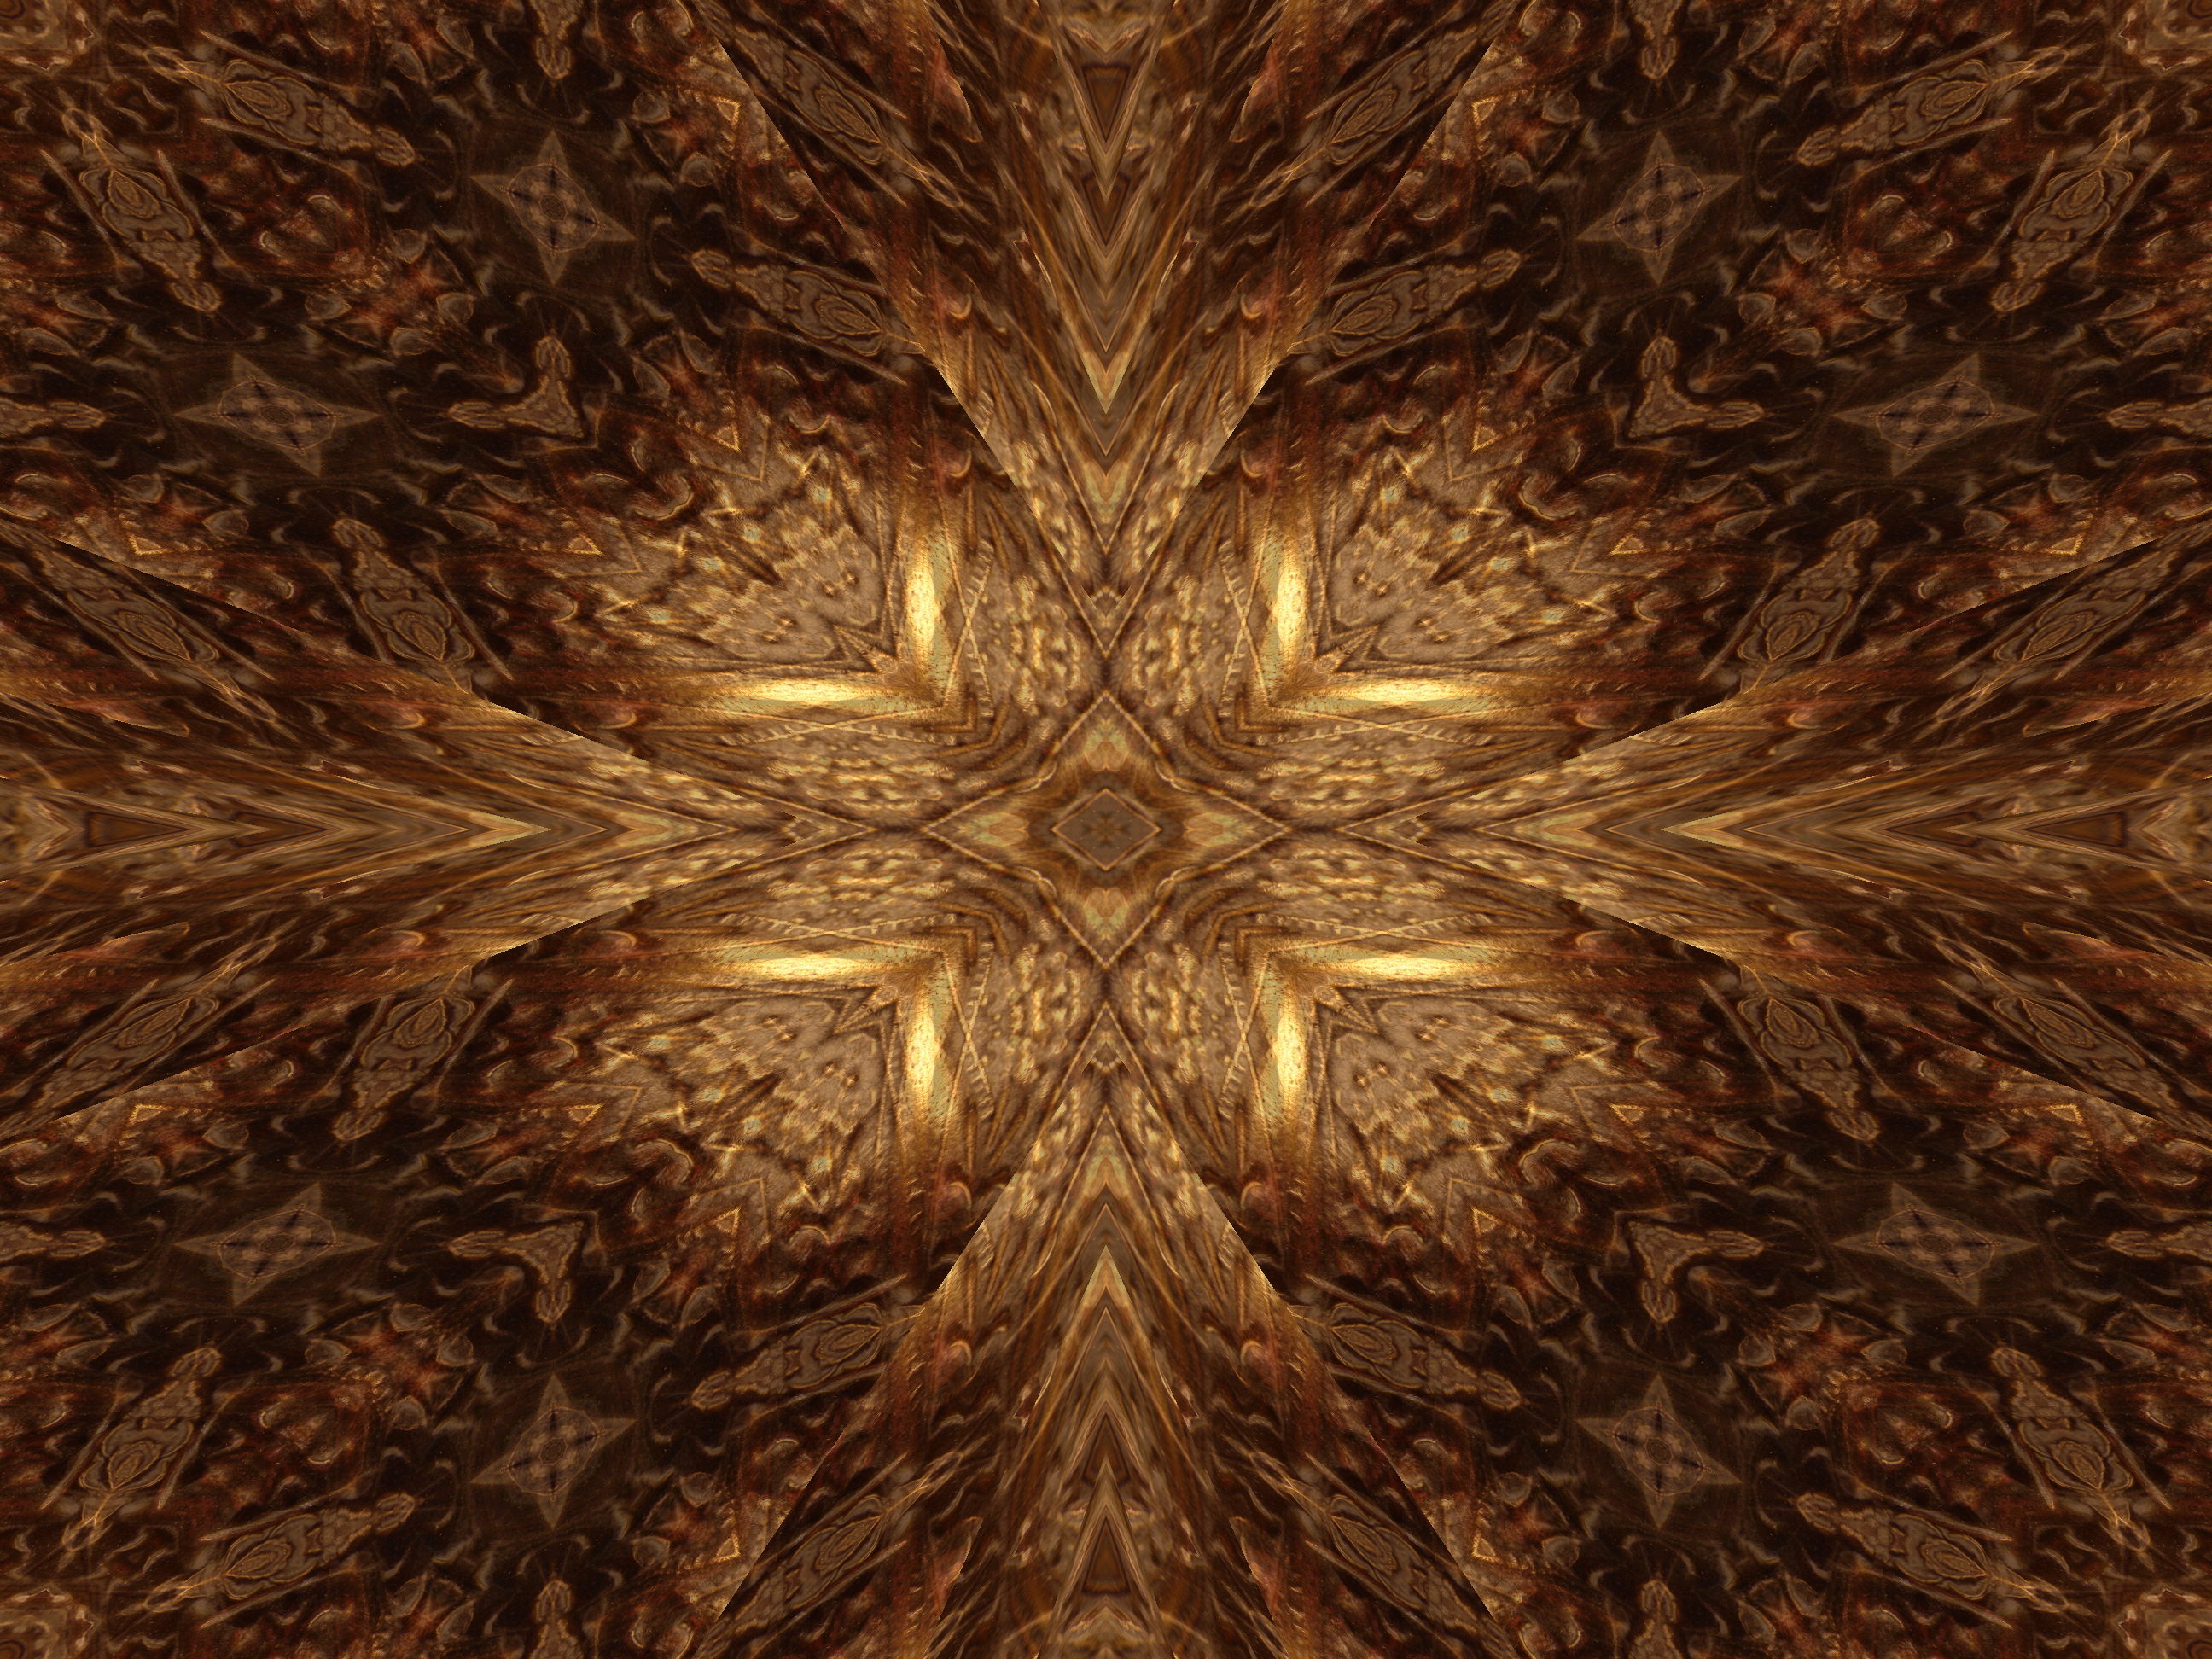 Abstract Bronze Background by FantasyStock 2592x1944